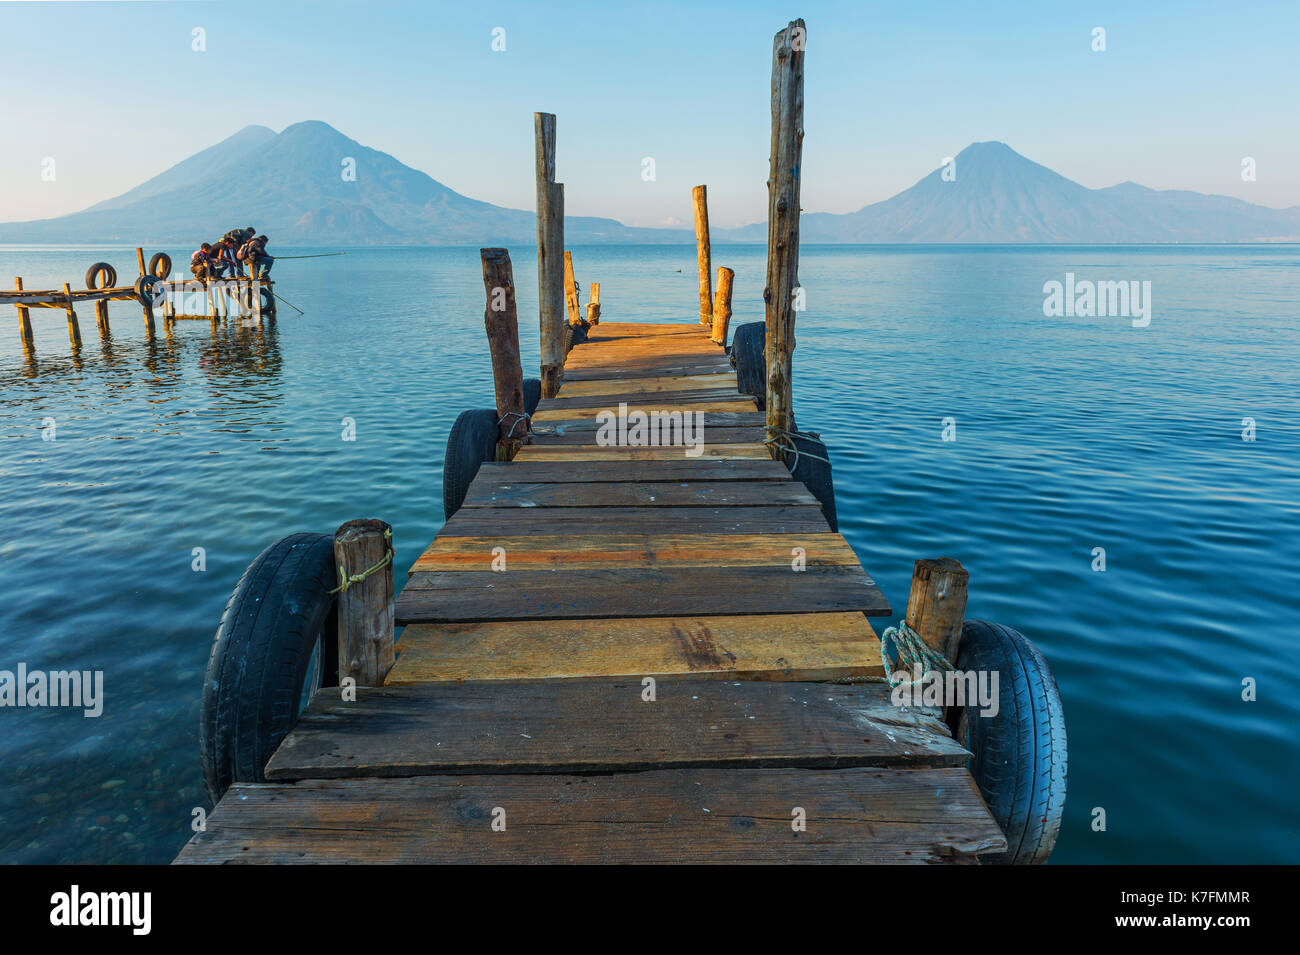 Young boys fishing on a pier by the Atitlan Lake at sunrise with volcano San Pedro in the background near Panajachel in Guatemala, Central America. - Stock Image